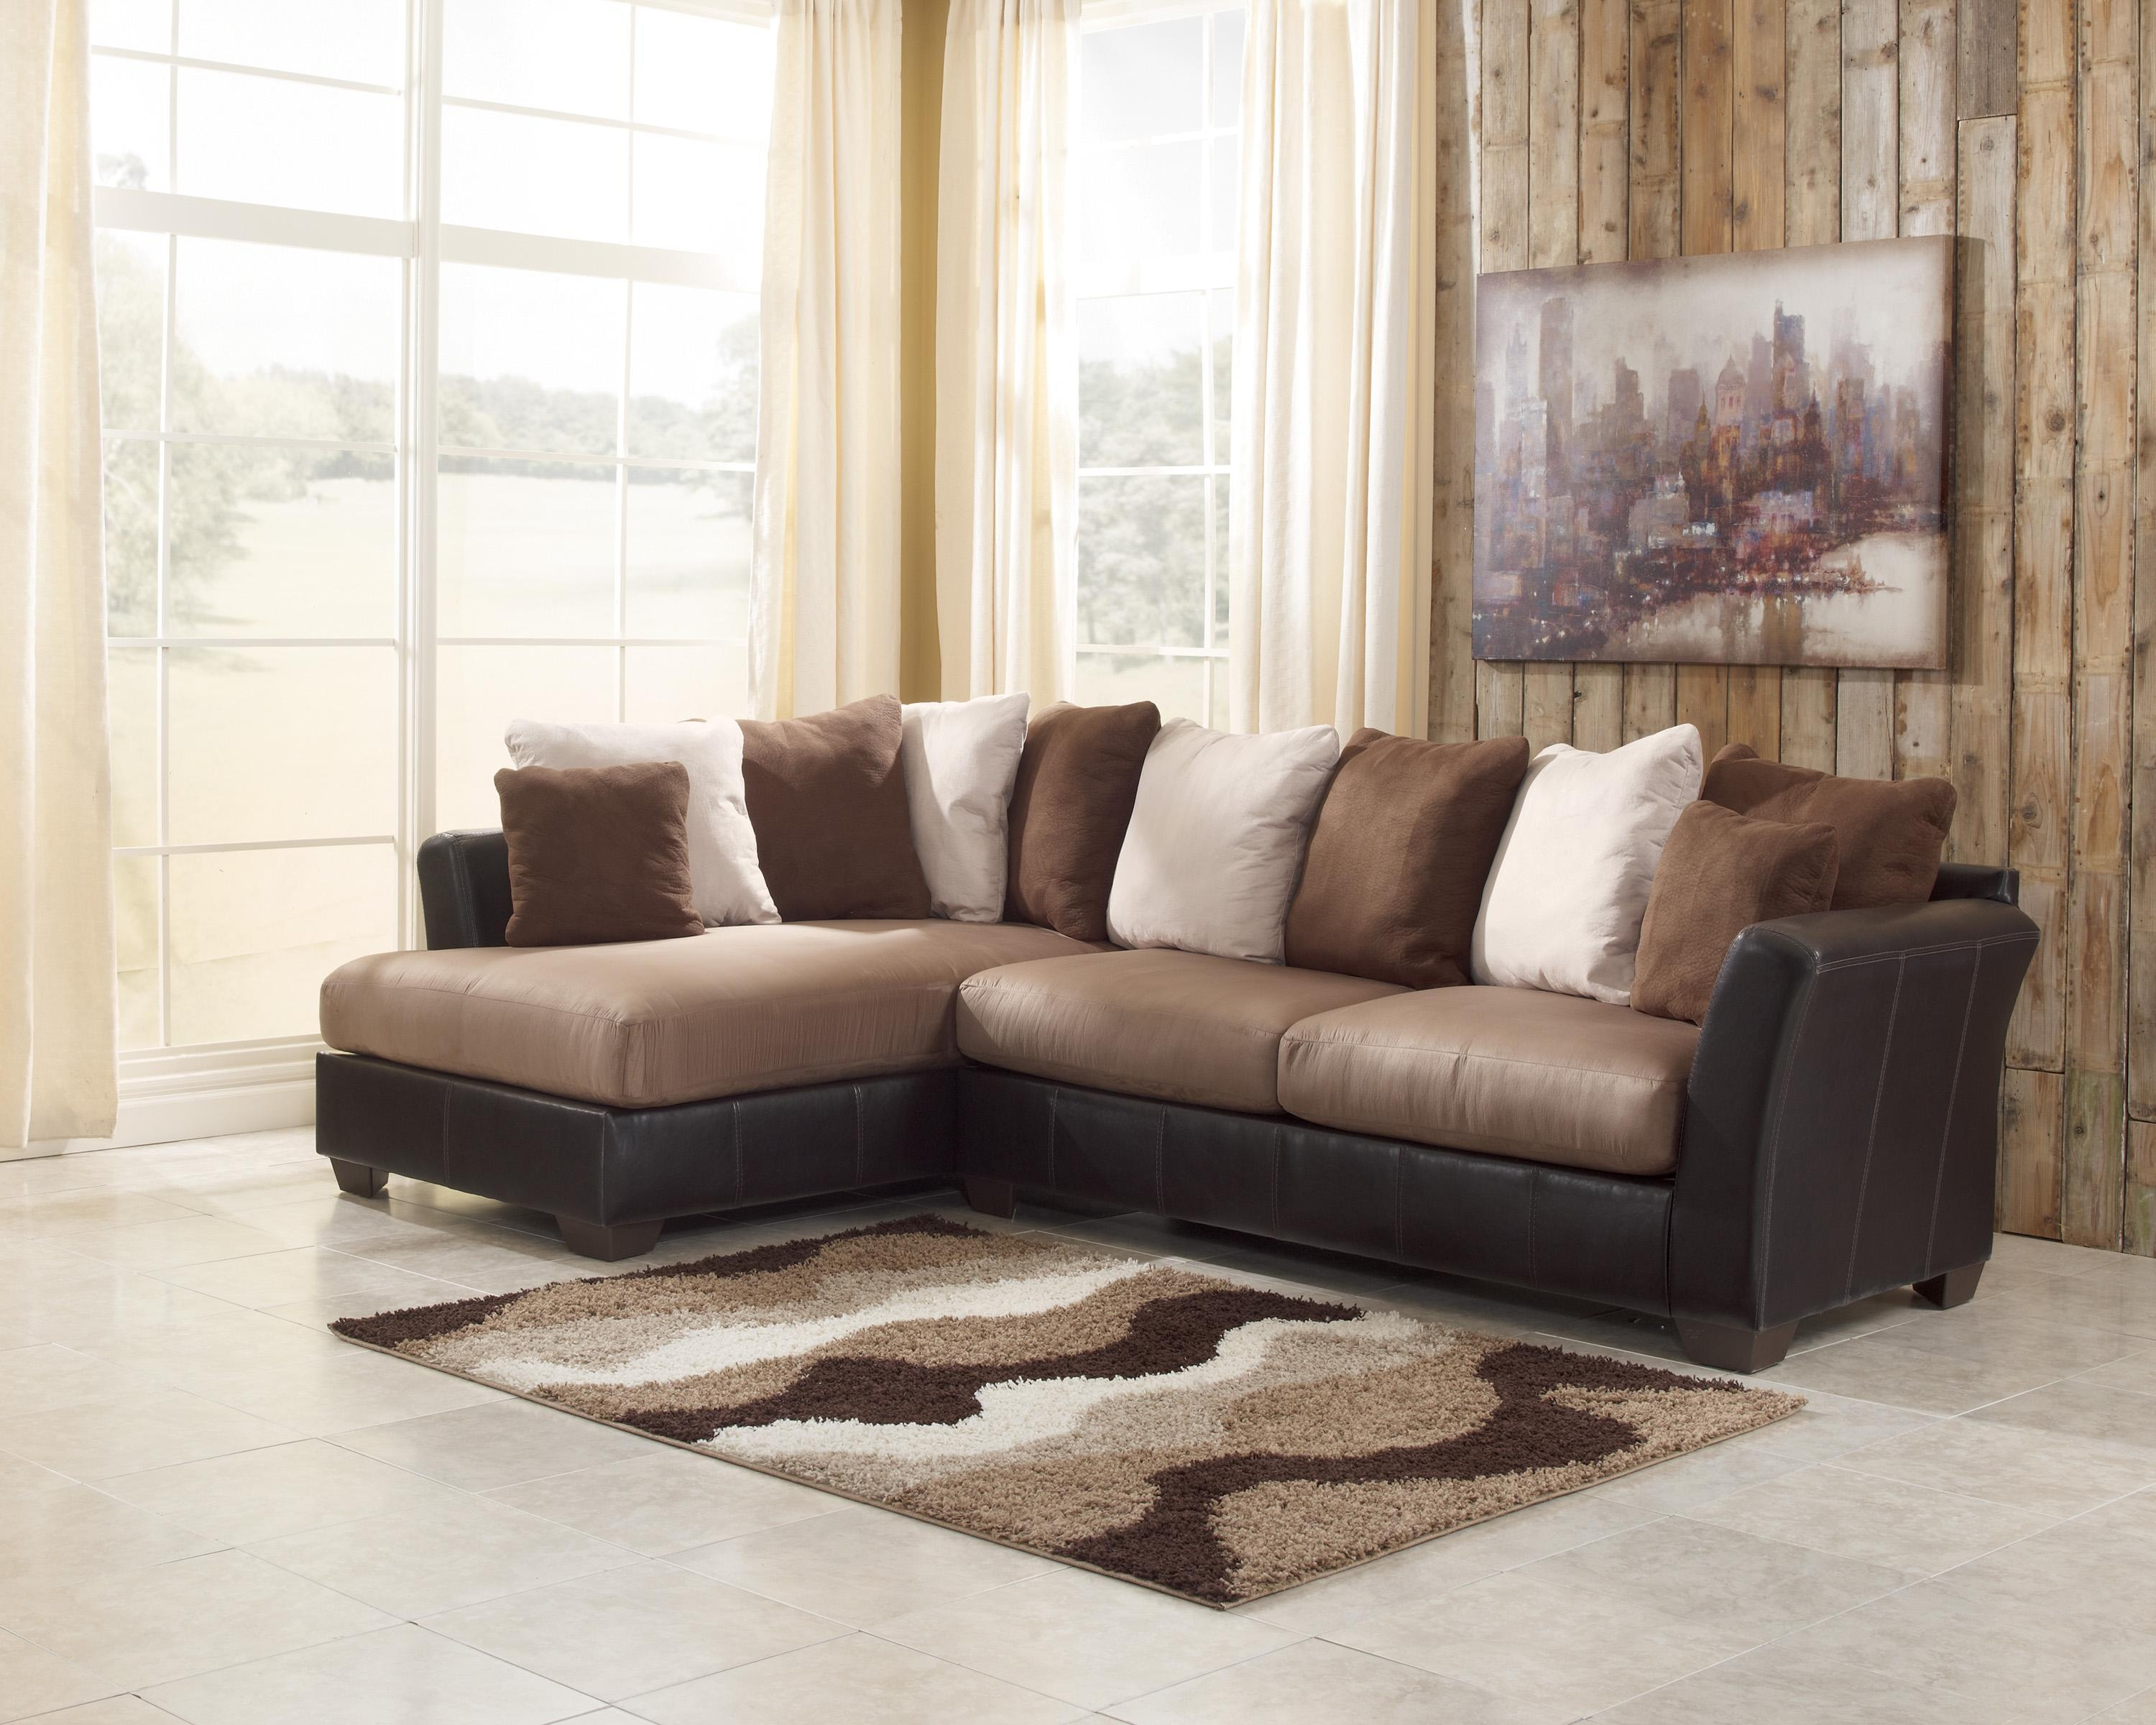 Two Piece Sectional Sofa With Chaise | Tehranmix Decoration With Regard To Sectional Sofa With 2 Chaises (View 18 of 20)